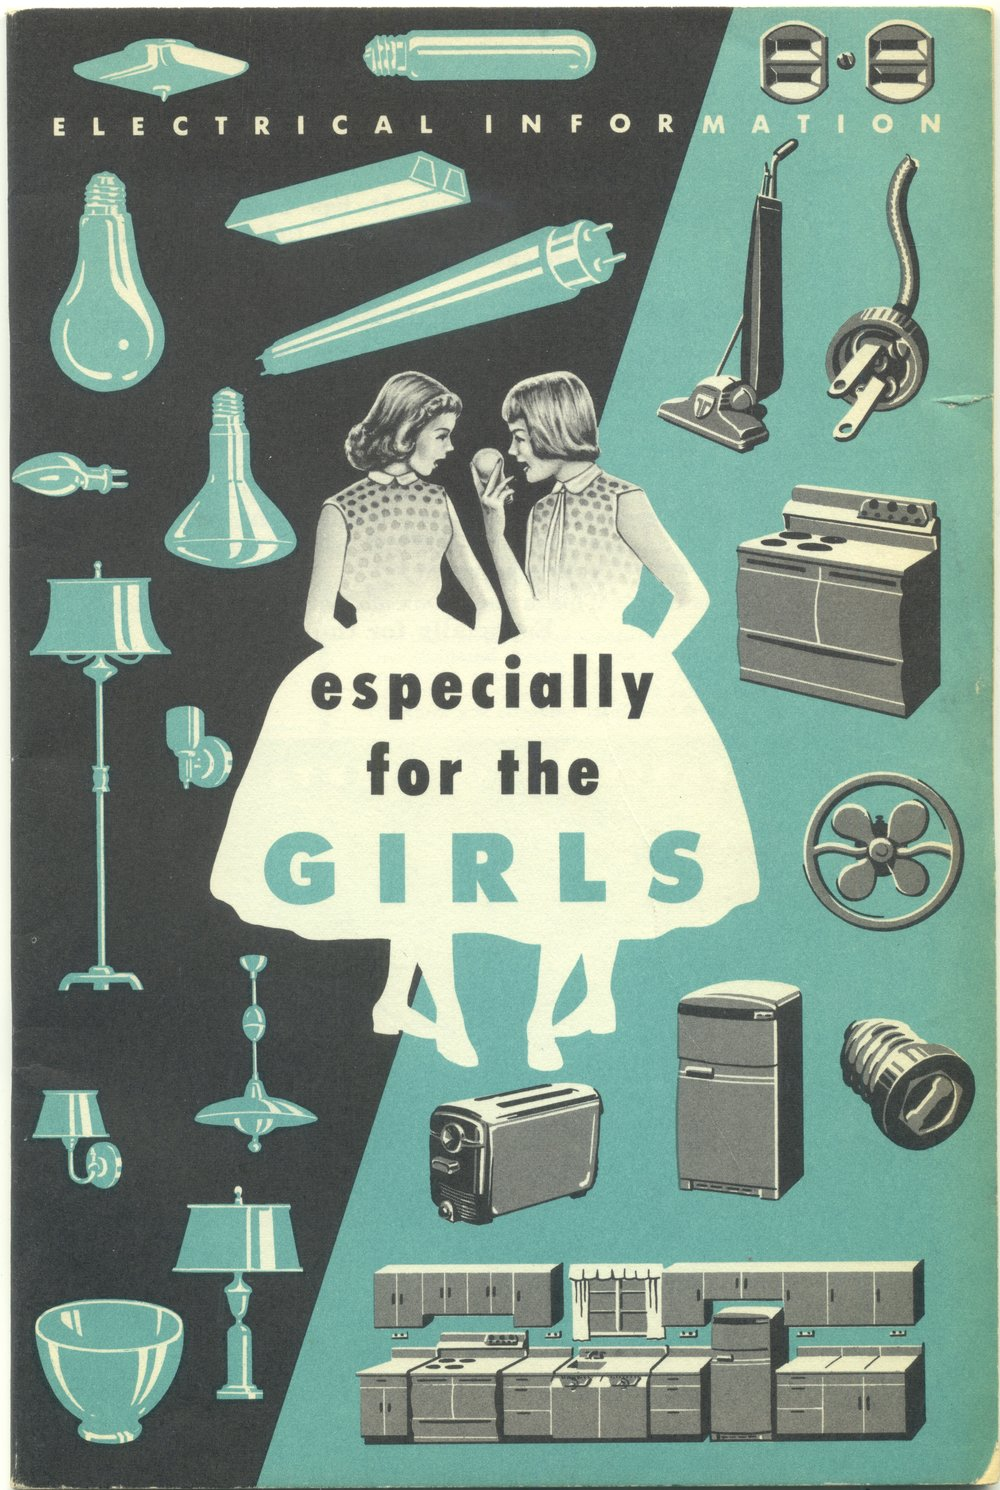 1957 Westinghouse booklet with special electrical information for the girls!